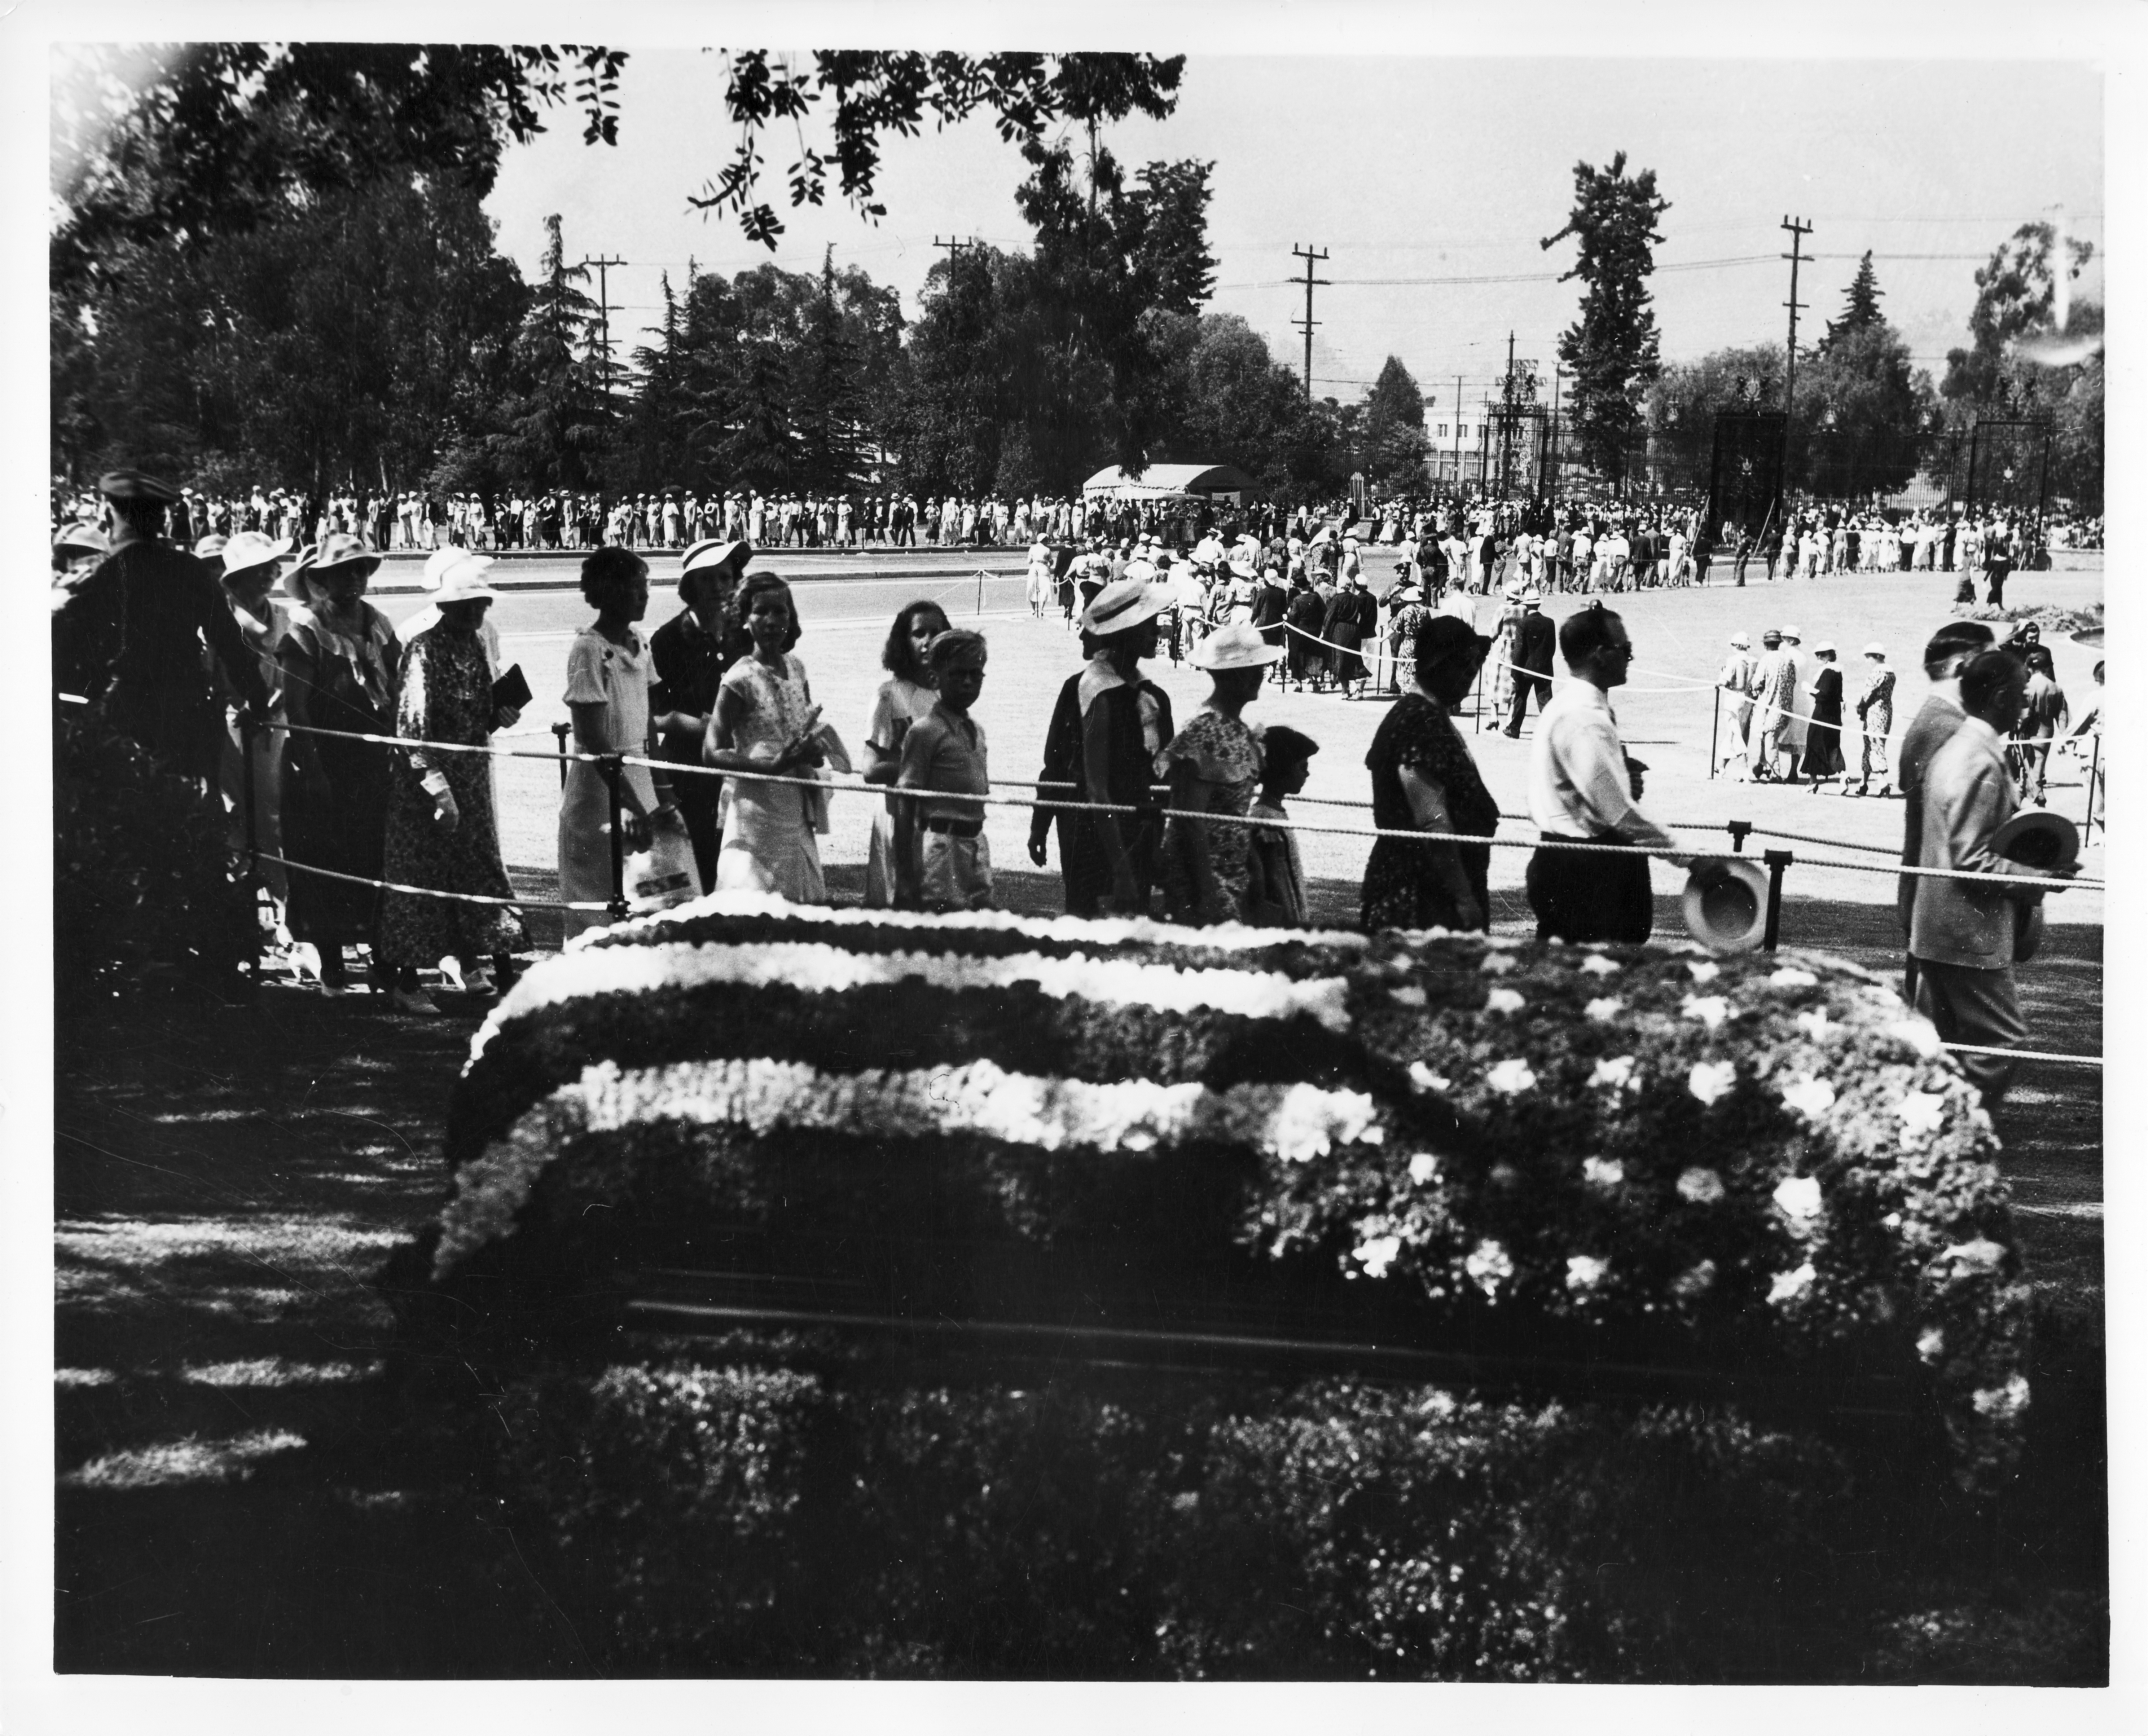 The public viewing of Rogers' flower-covered casket at Forest Lawn Cemetery in Los Angeles on Aug. 22, 1935. Image provided by Will Rogers Memorial Museum